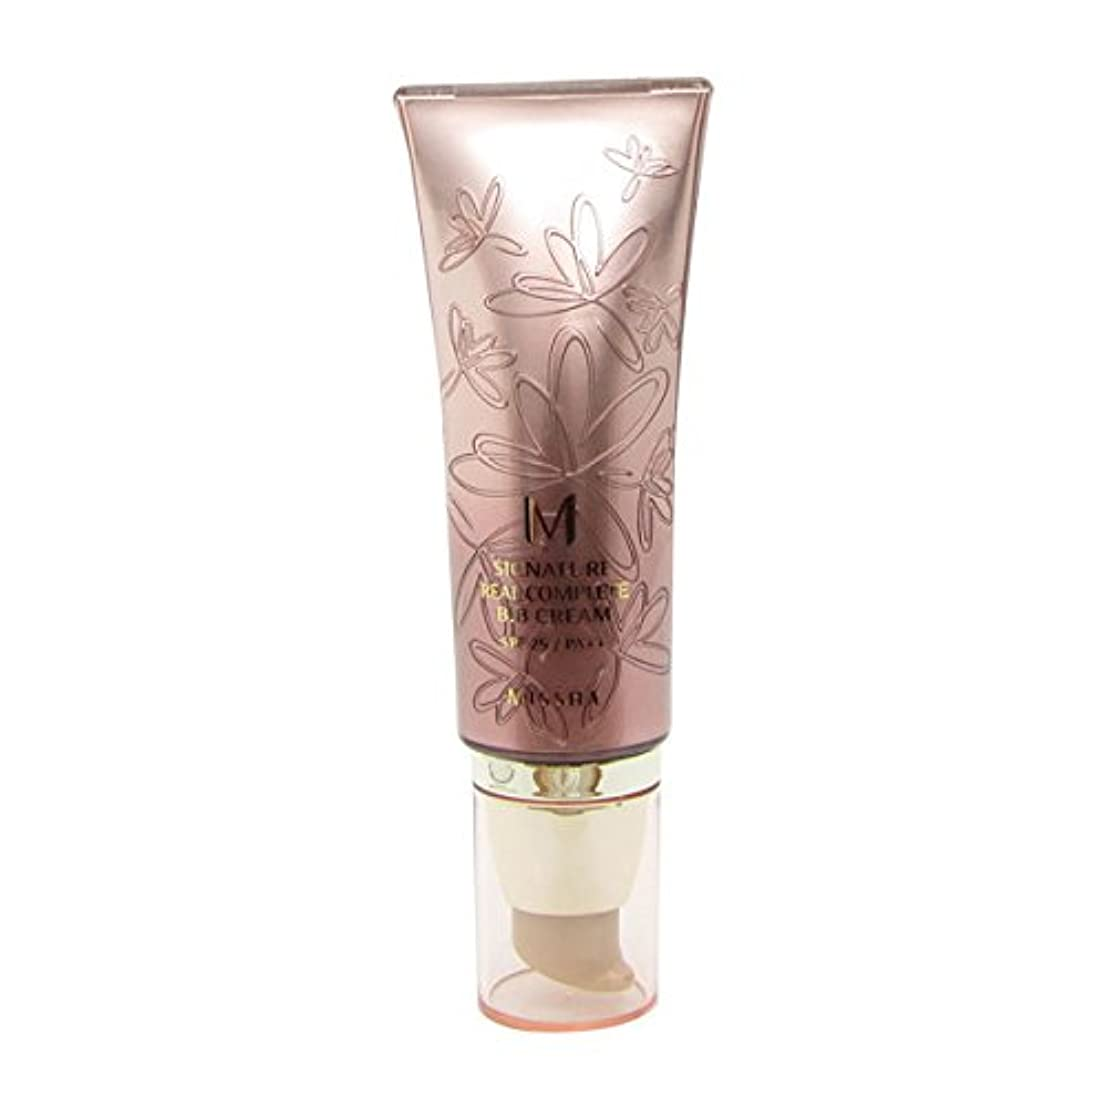 Missha Signature Real Complete Bb Cream Fps25/pa++ No.13 Light Milky Beige 45g [並行輸入品]